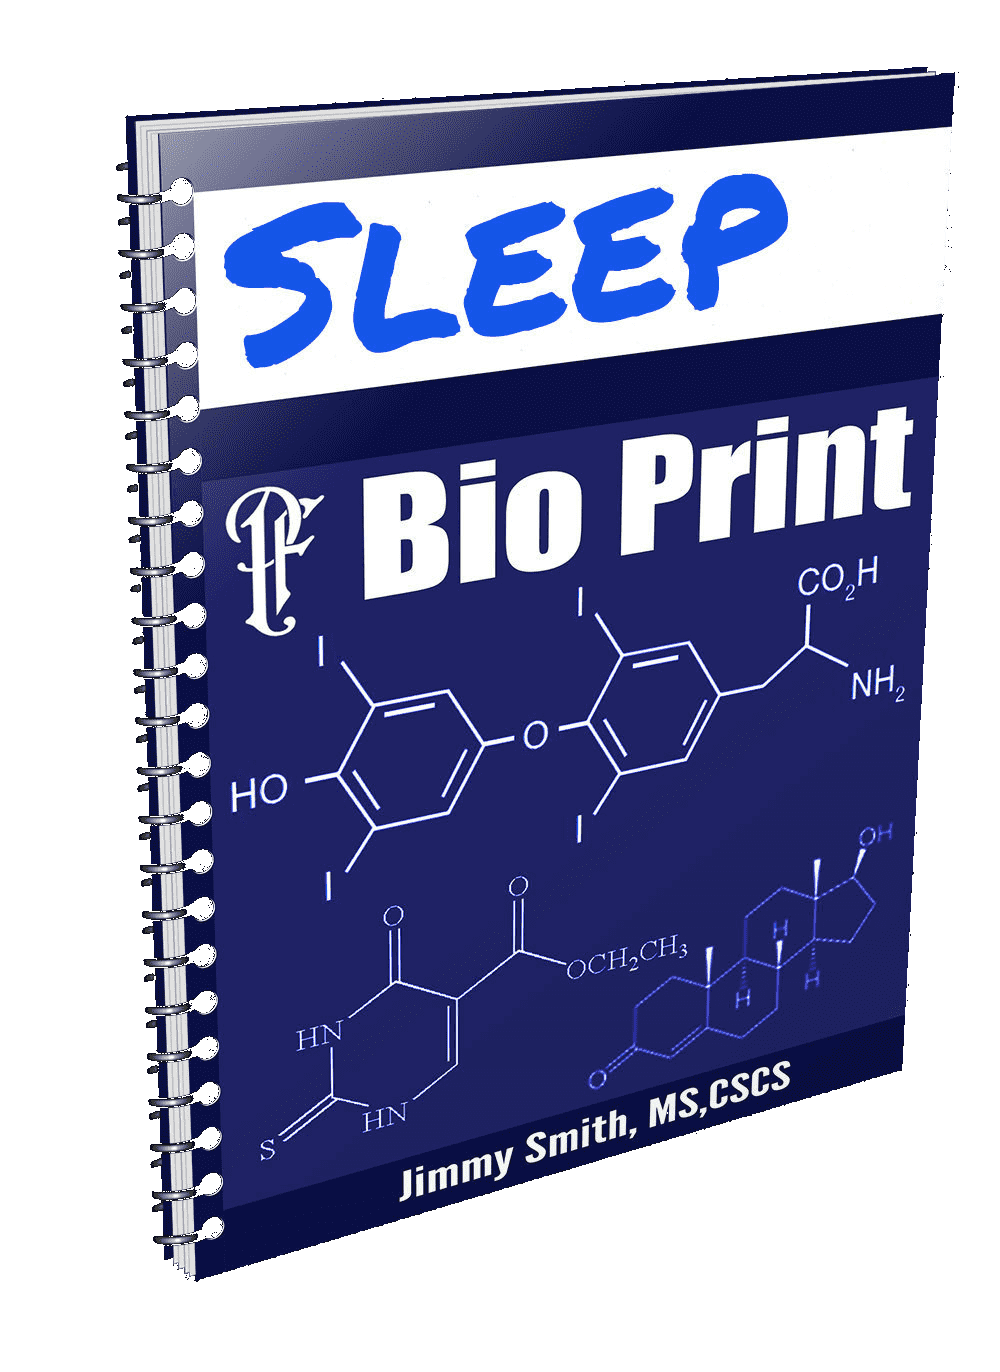 Sleep BioPrint - Physique Formula